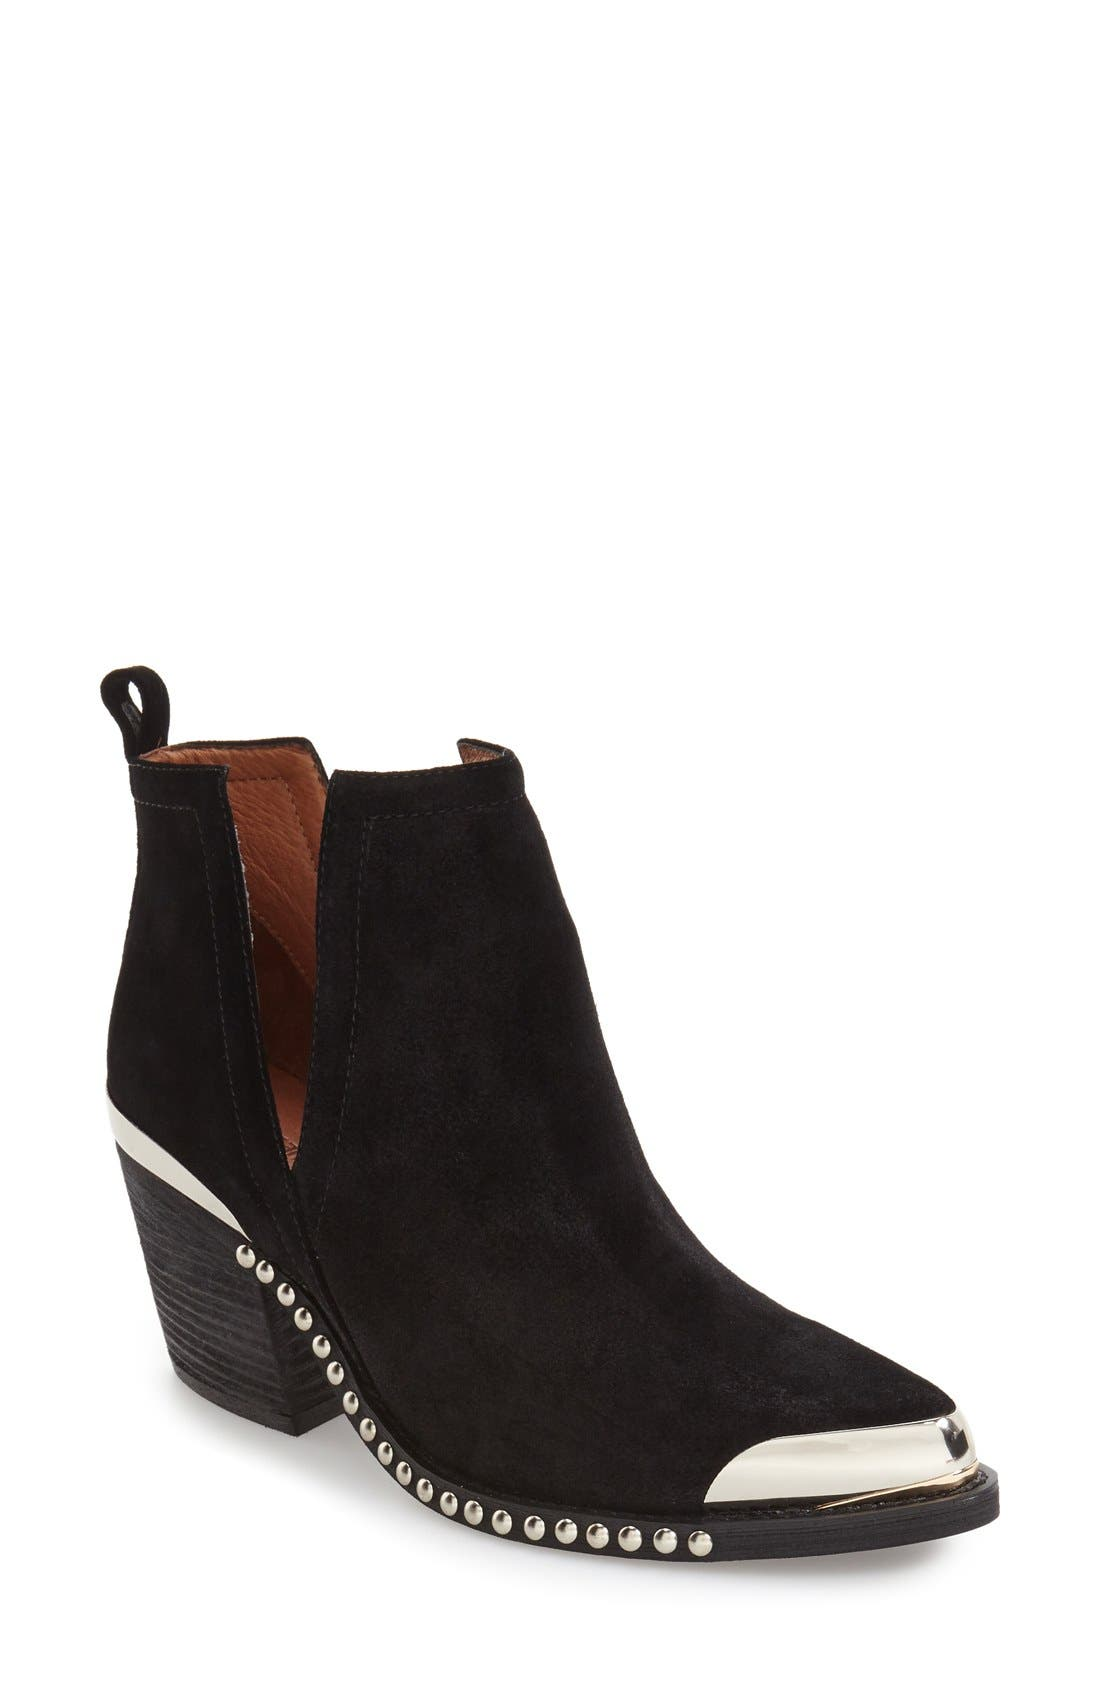 Alternate Image 1 Selected - Jeffrey Campbell Optimum Pointy Toe Bootie (Women)